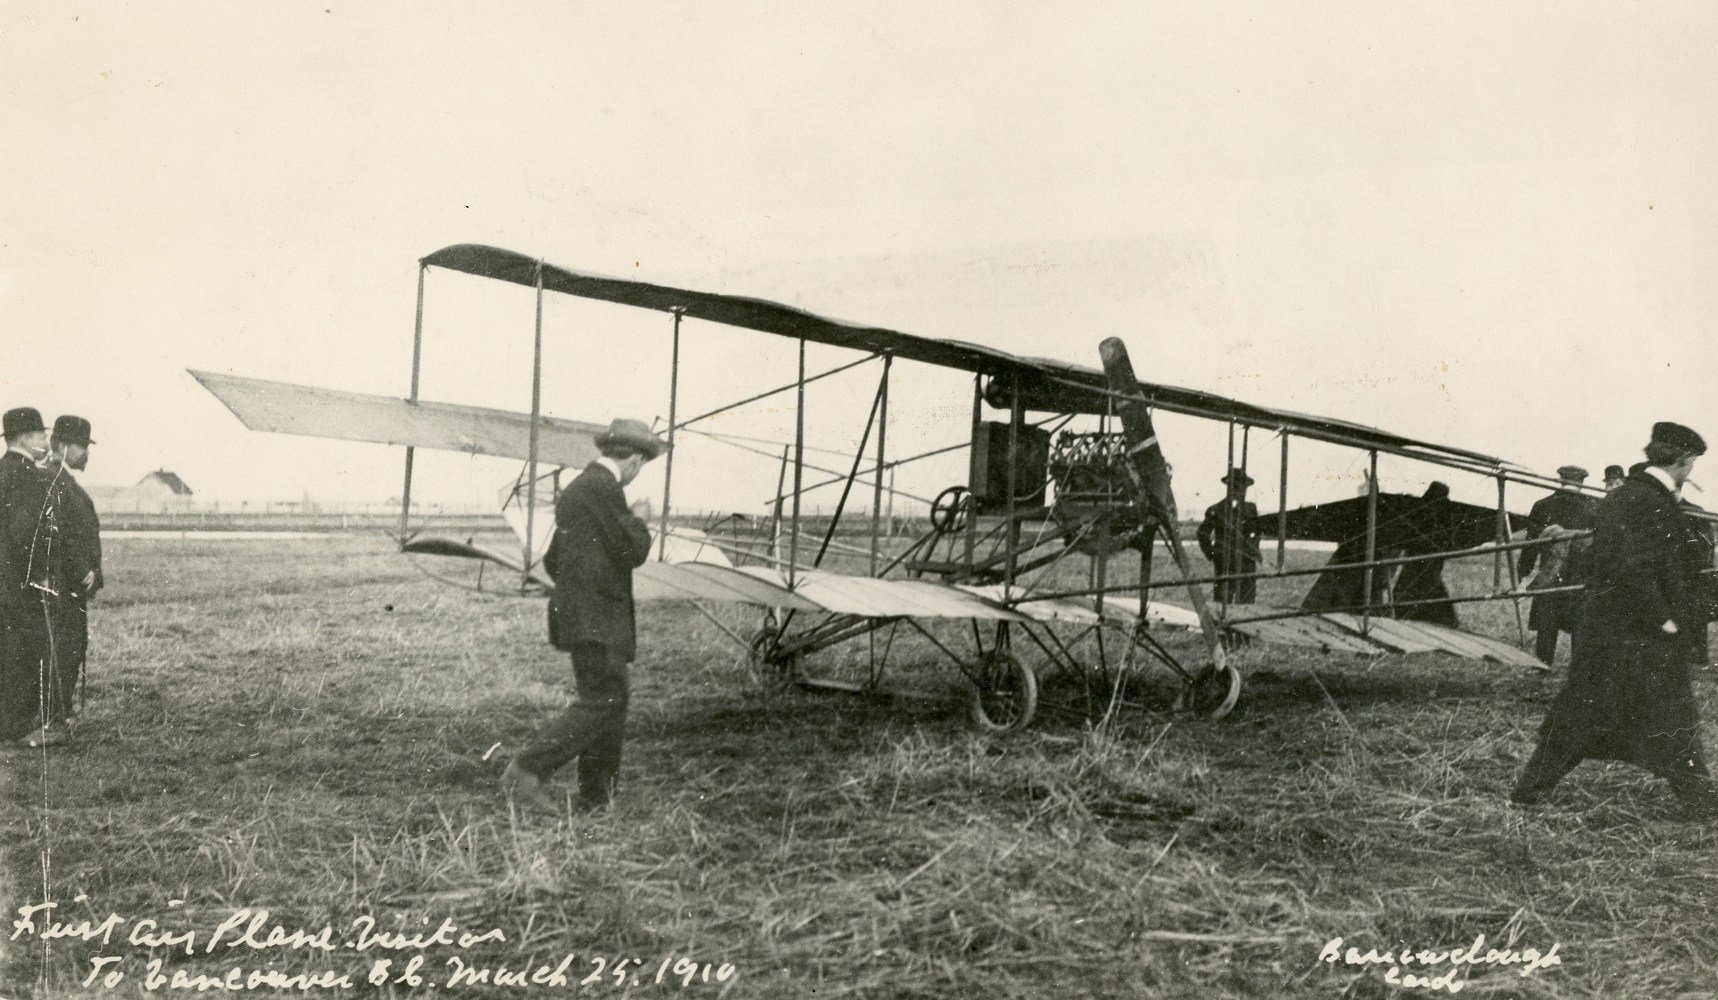 Aviation | Outside the Box – The Richmond Archives Blog